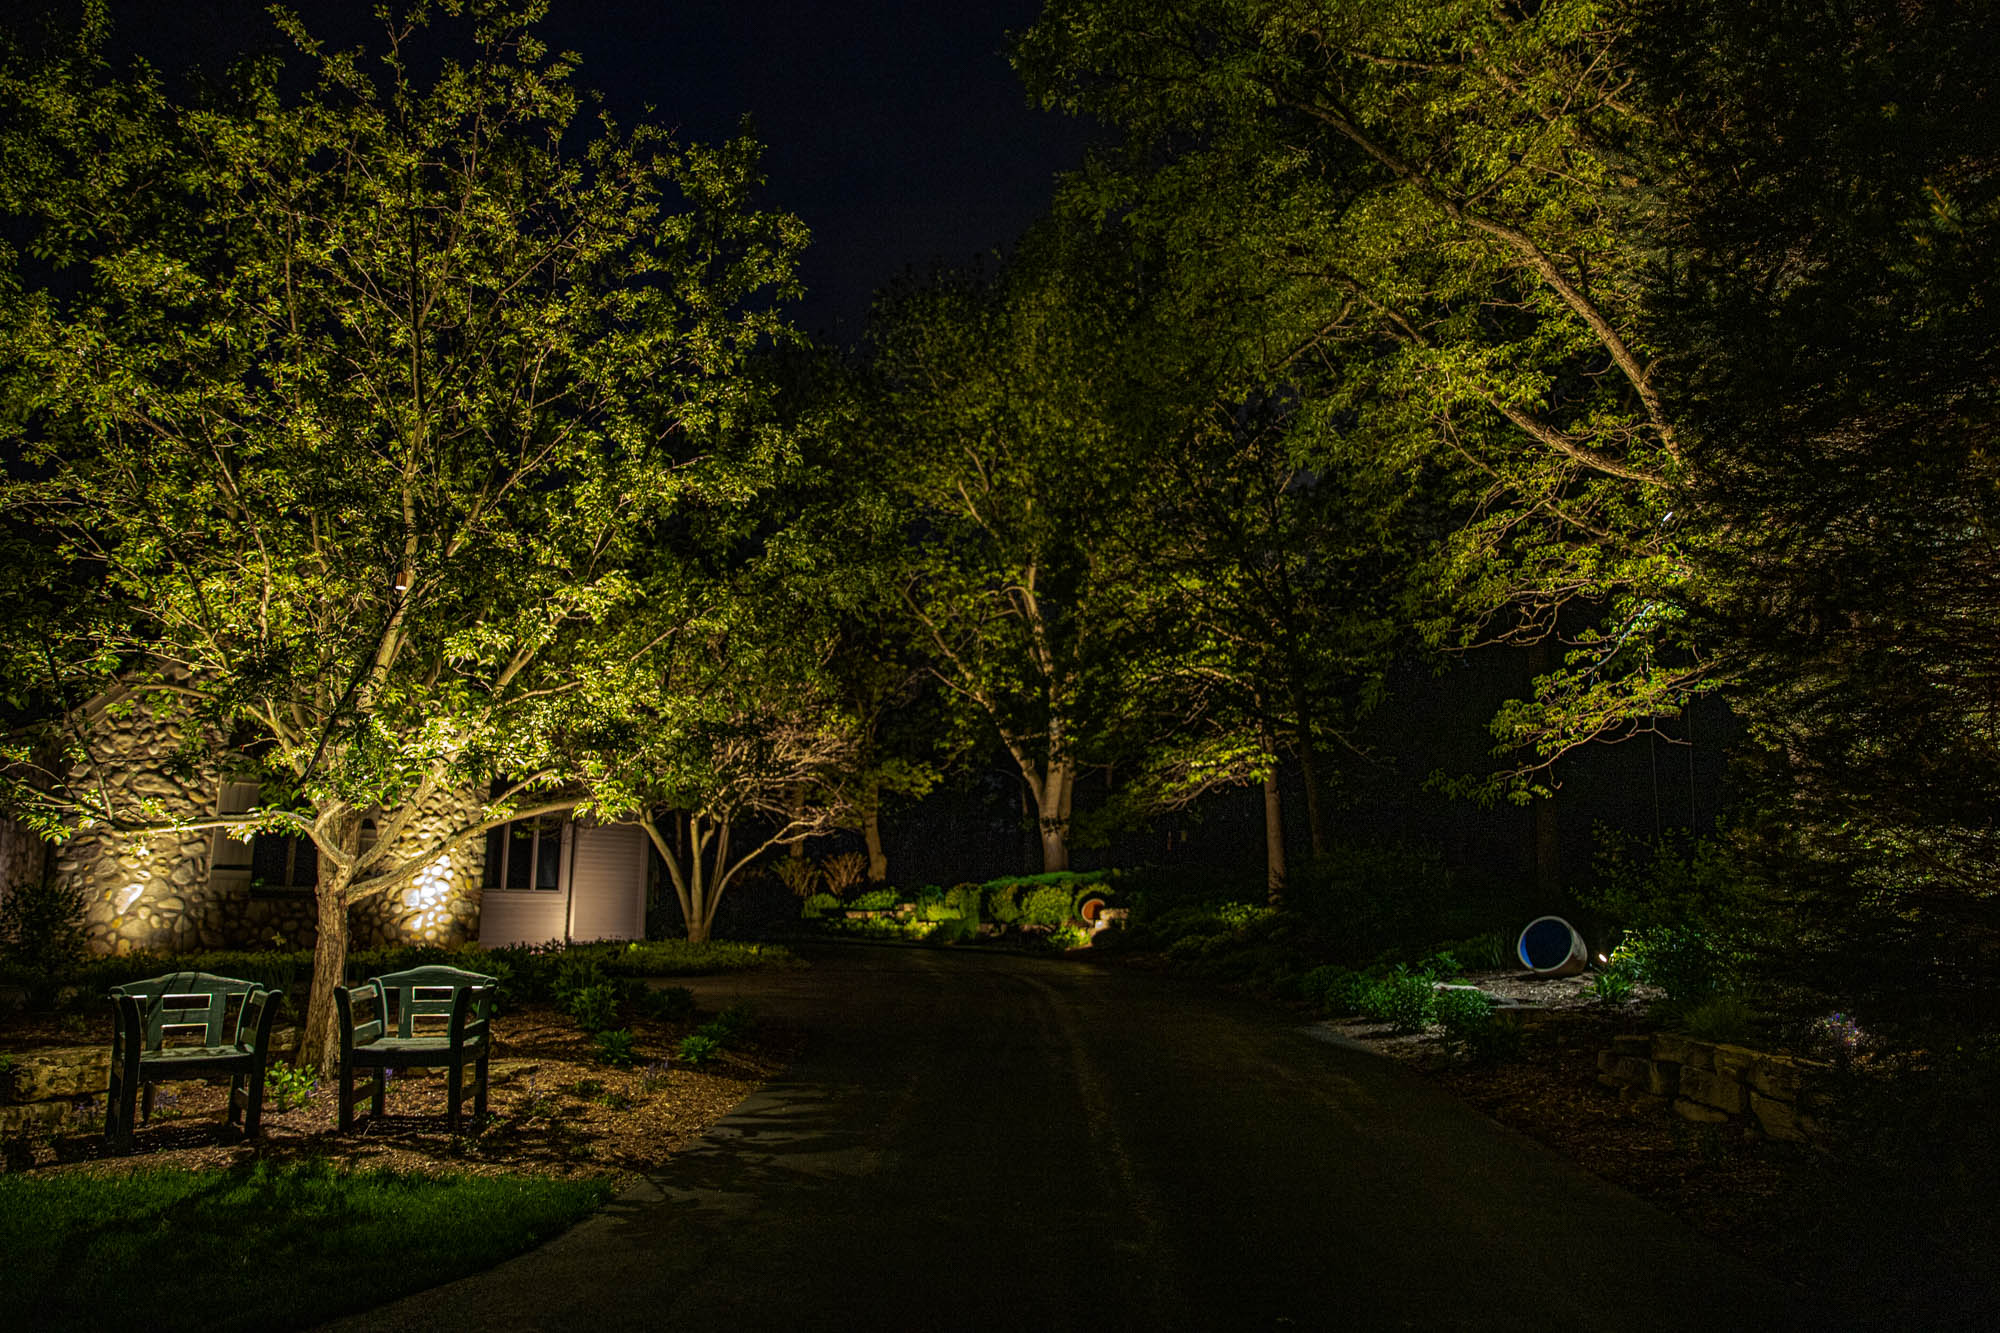 delafield landscape outdoor lighting night owl walkway tree lighting stone uplights bench seat lights